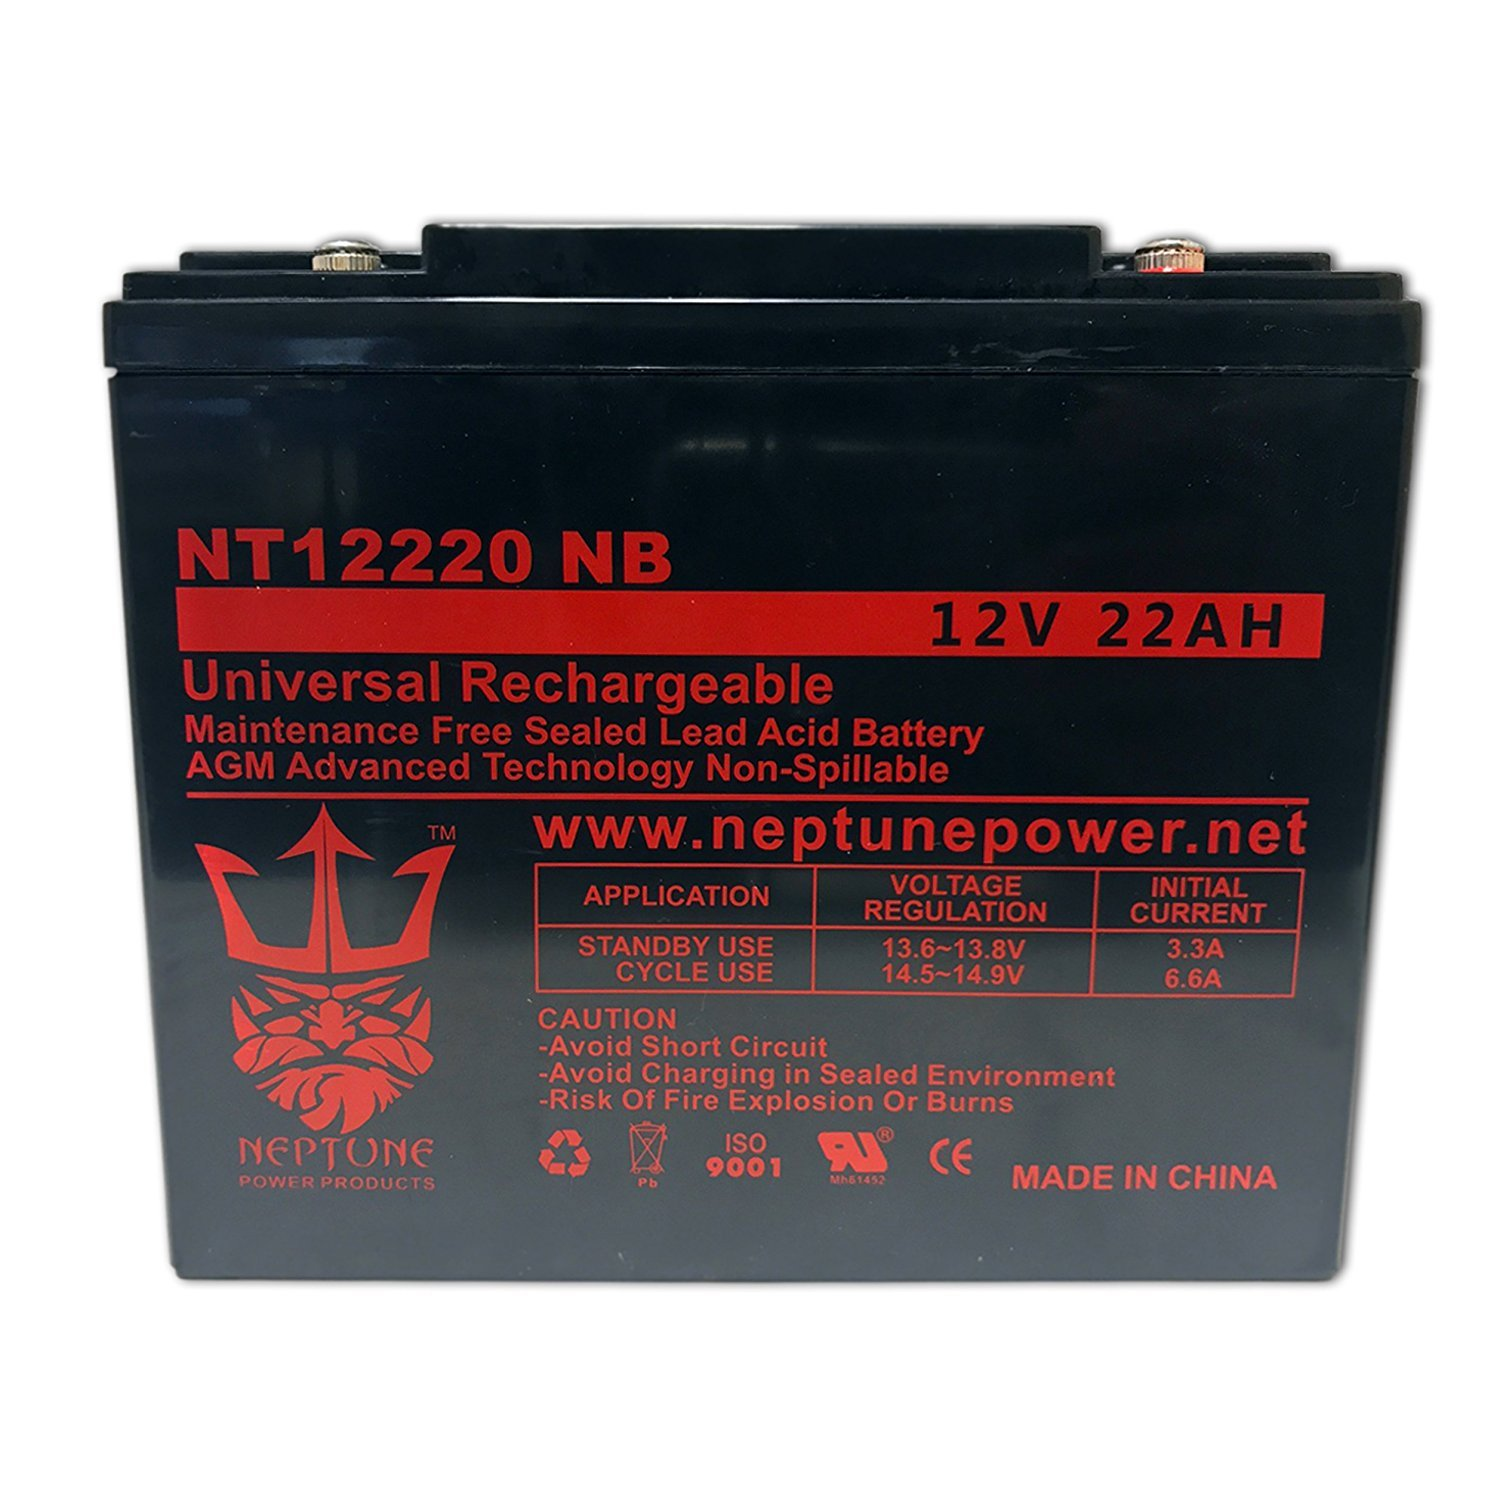 JNC105, JNCX1, DSR12-22A-3, ES1230, 5799000010, RT12220, 0099000676, 5799000011, NPX-80, PRT5904, SEL CB19-12, DMU12-19 Replacement Battery 12v 22ah S BW12220-IT Sealed AGM for Jump N Carry, Booster Pac, Clore ProFormer, Schumacher, DSR Pro, ATD Tools, Ve